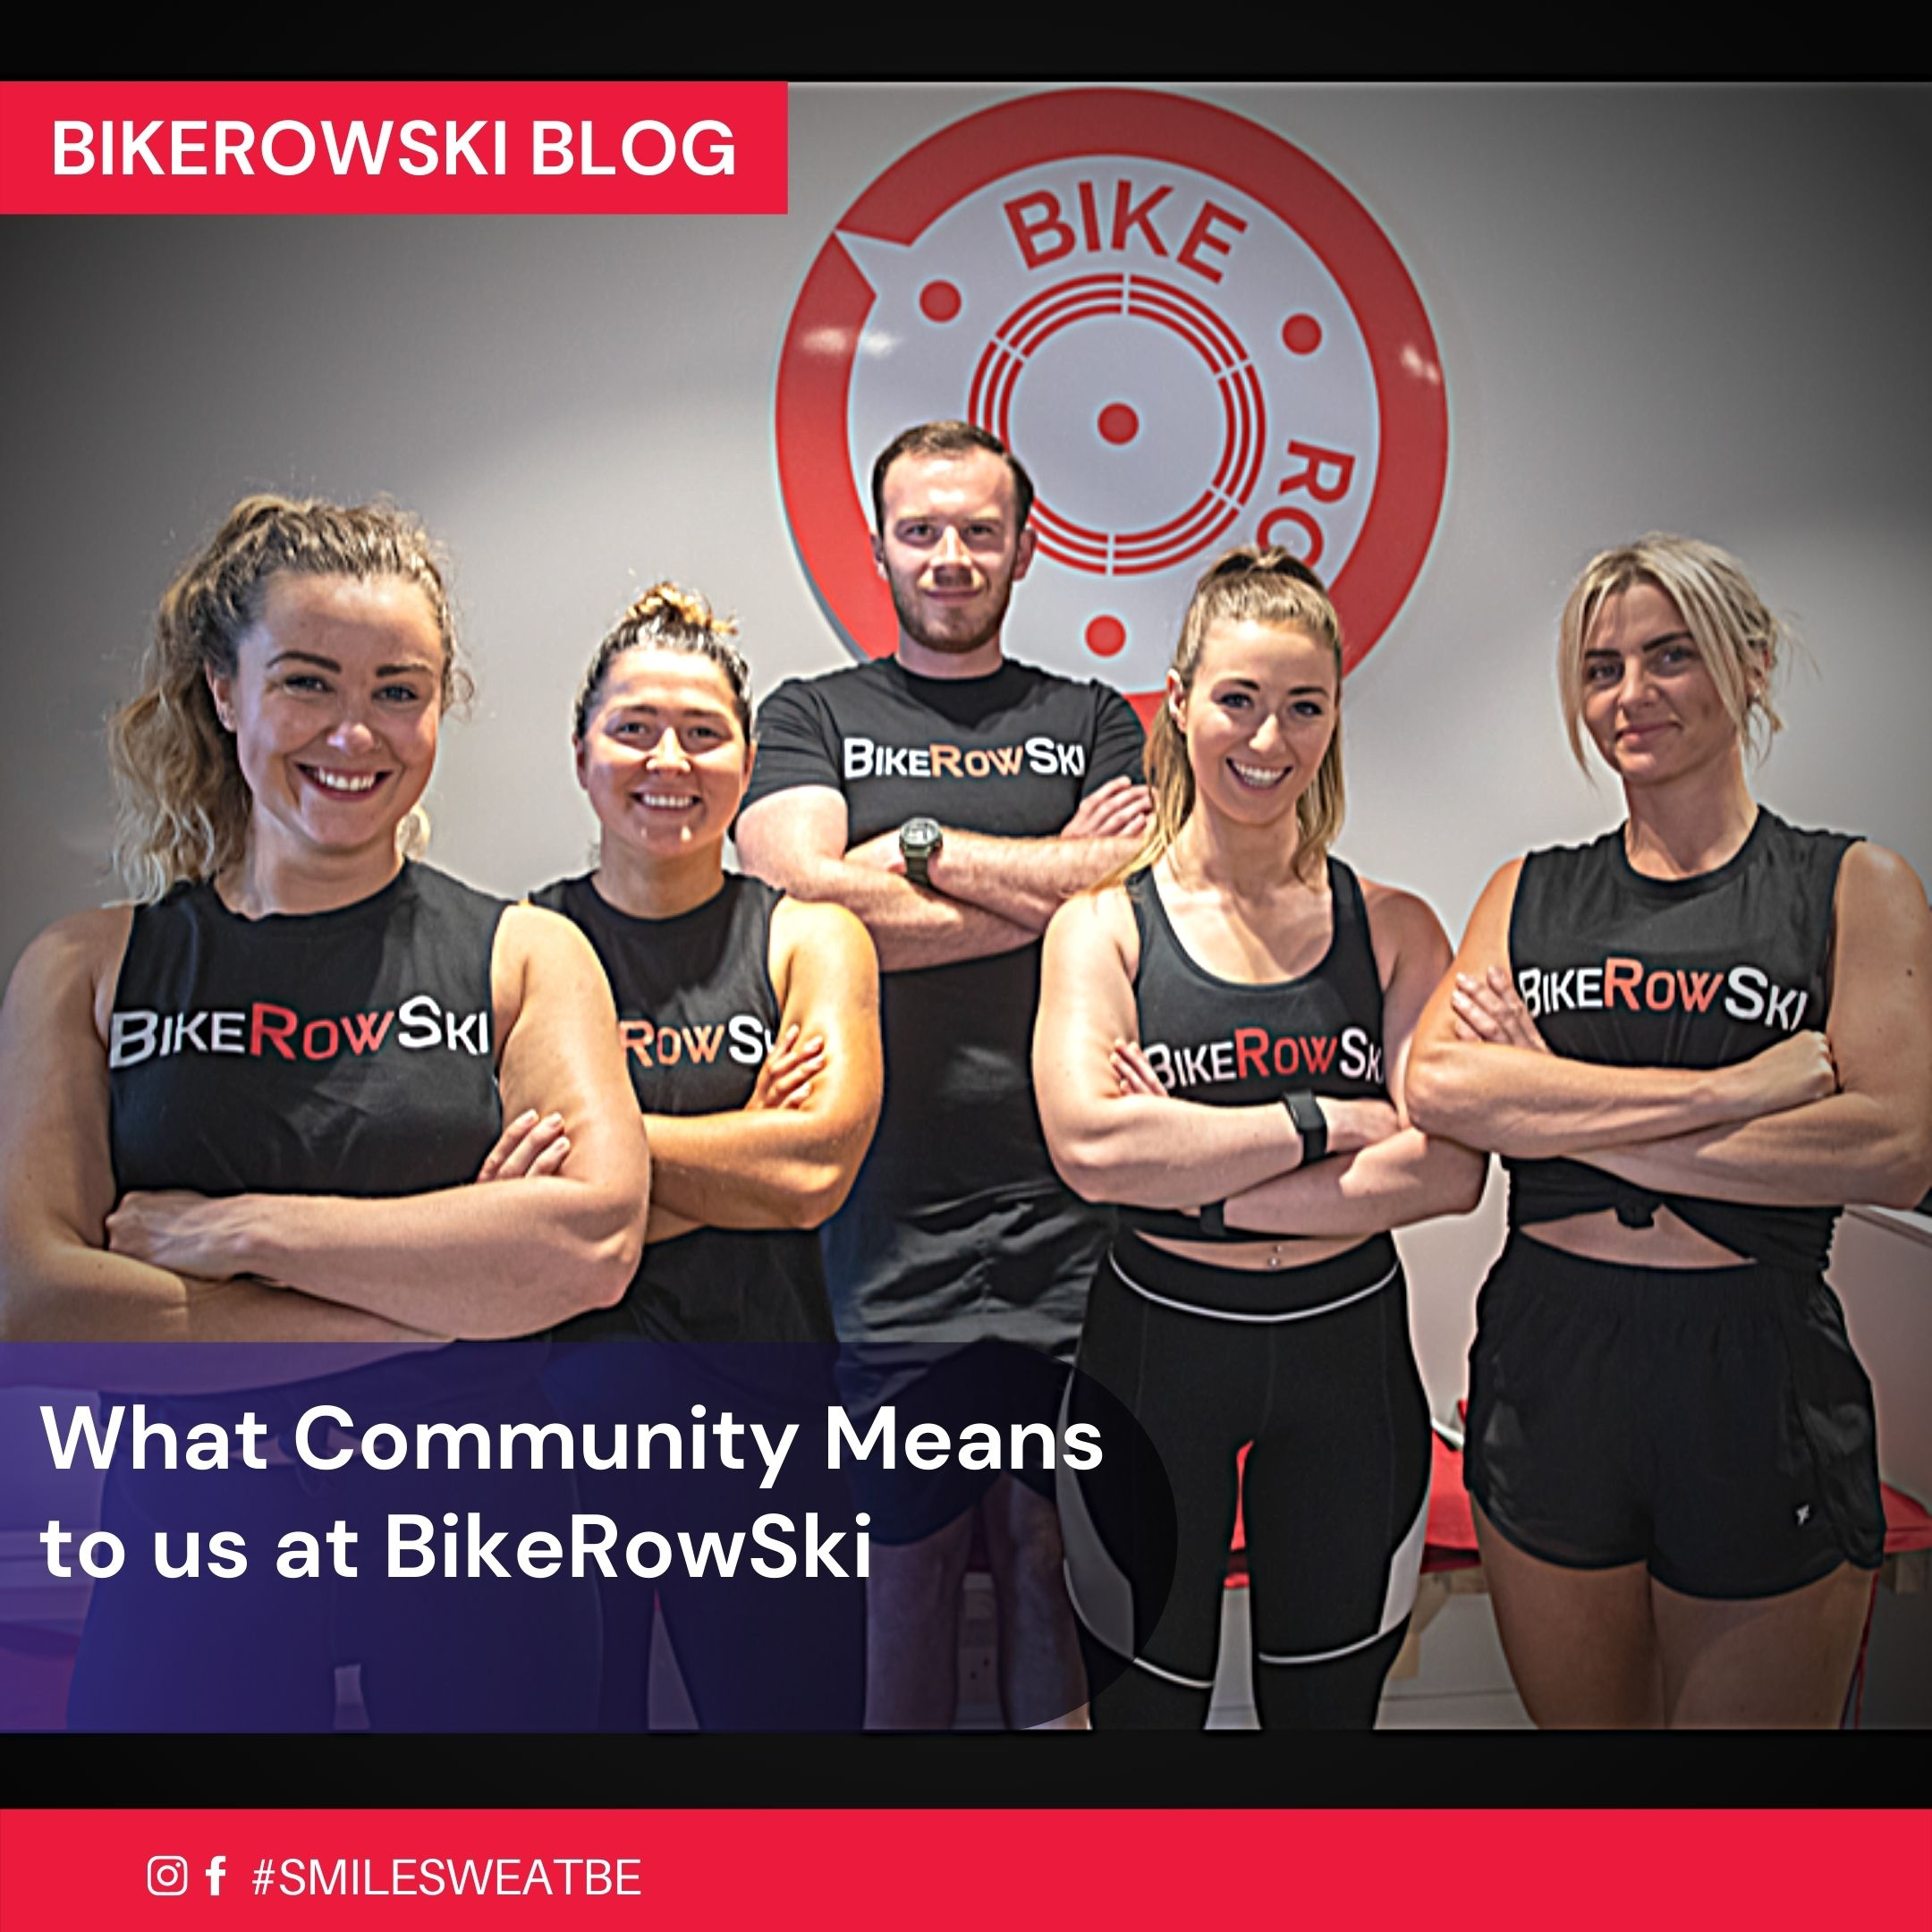 Community At BikeRowSki